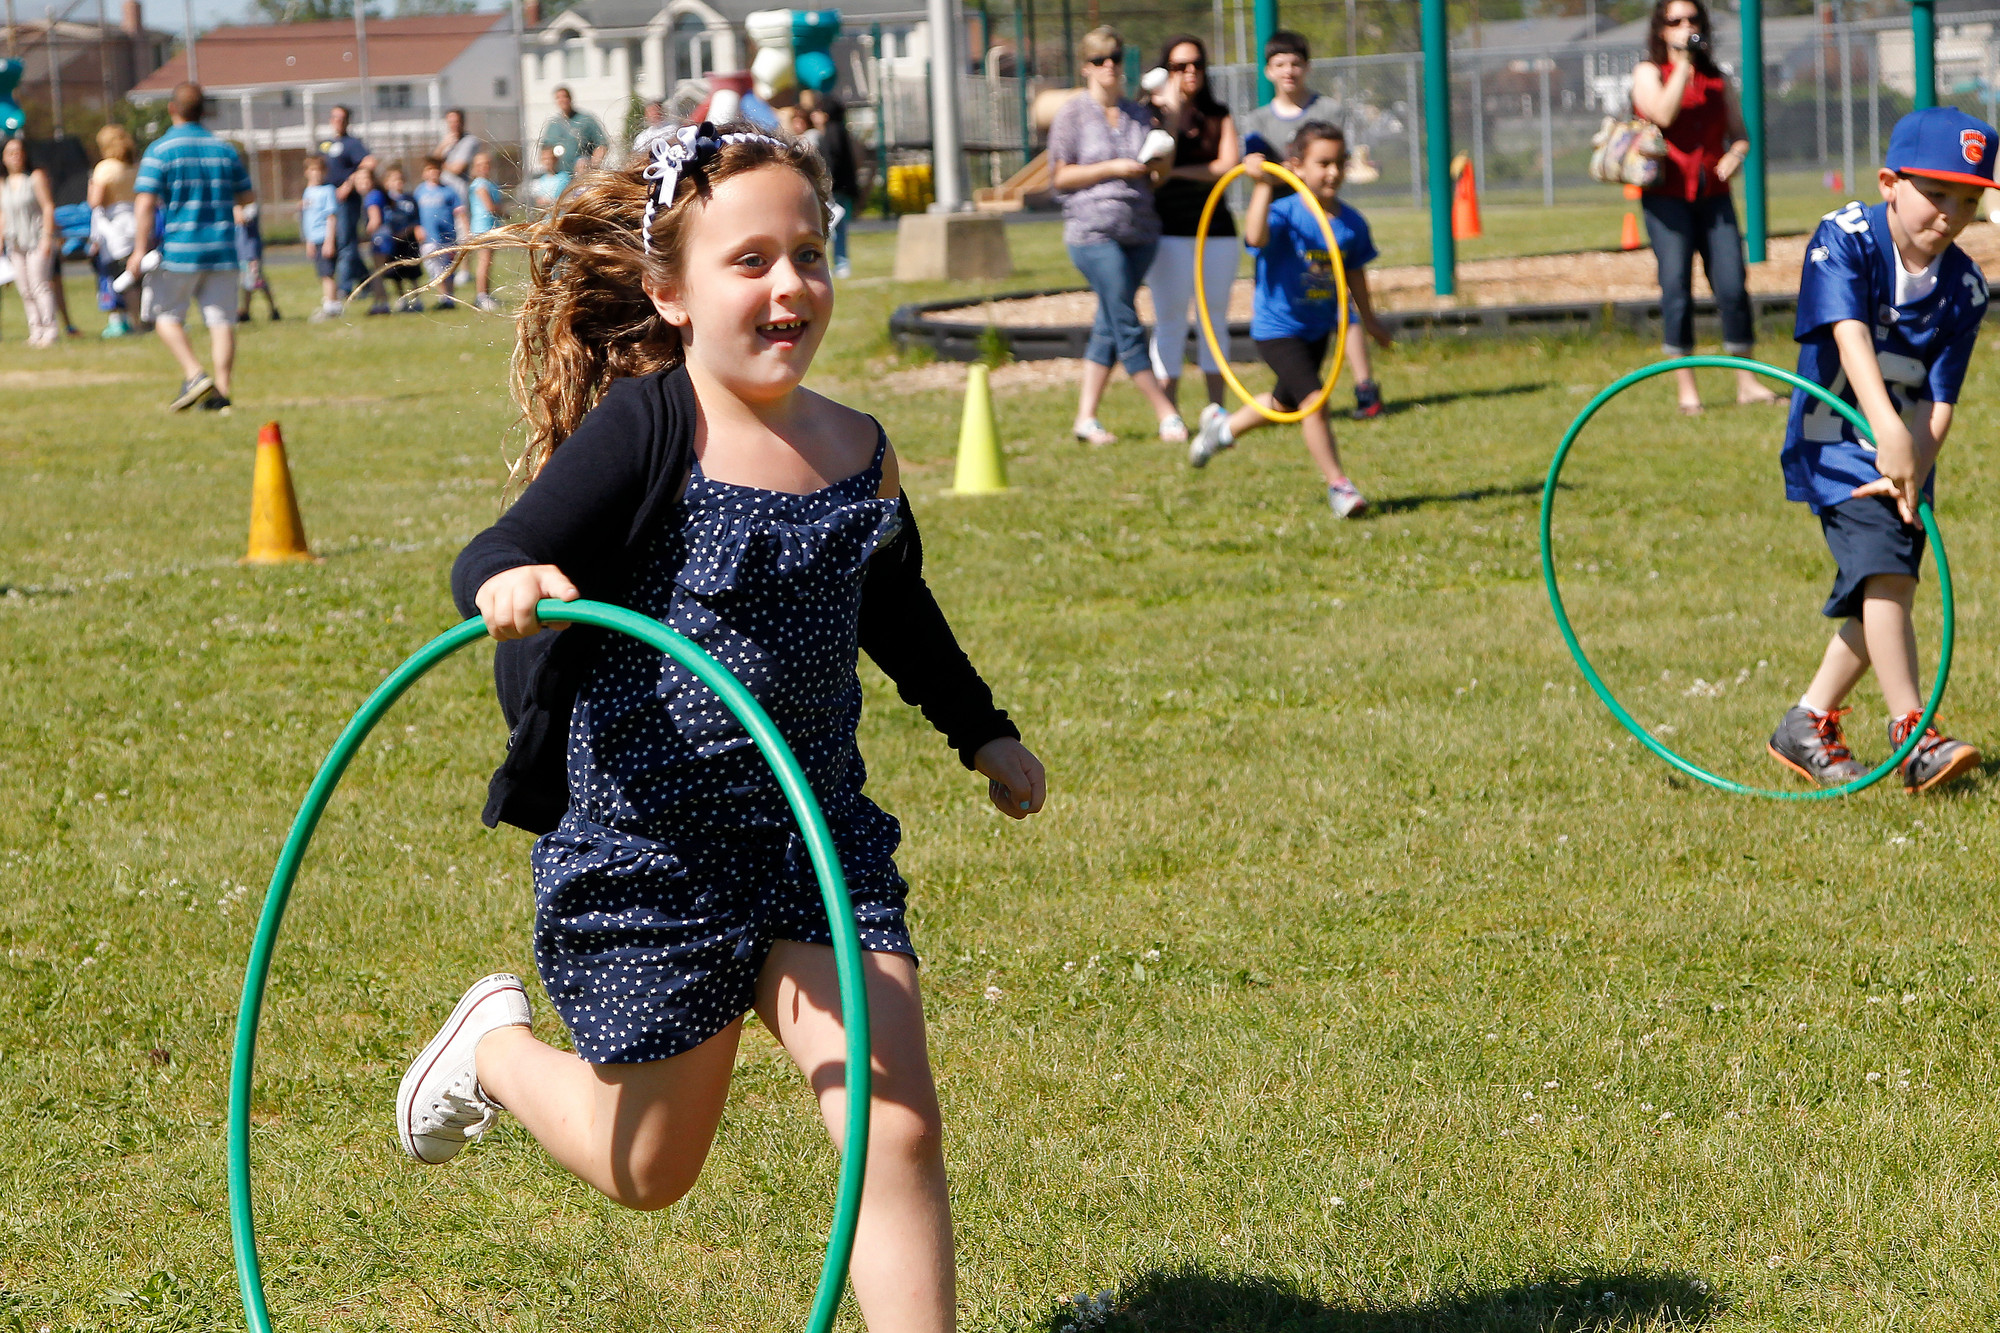 First-grader Olivia Randazzo held on to her hula-hoop while competing in a relay race.